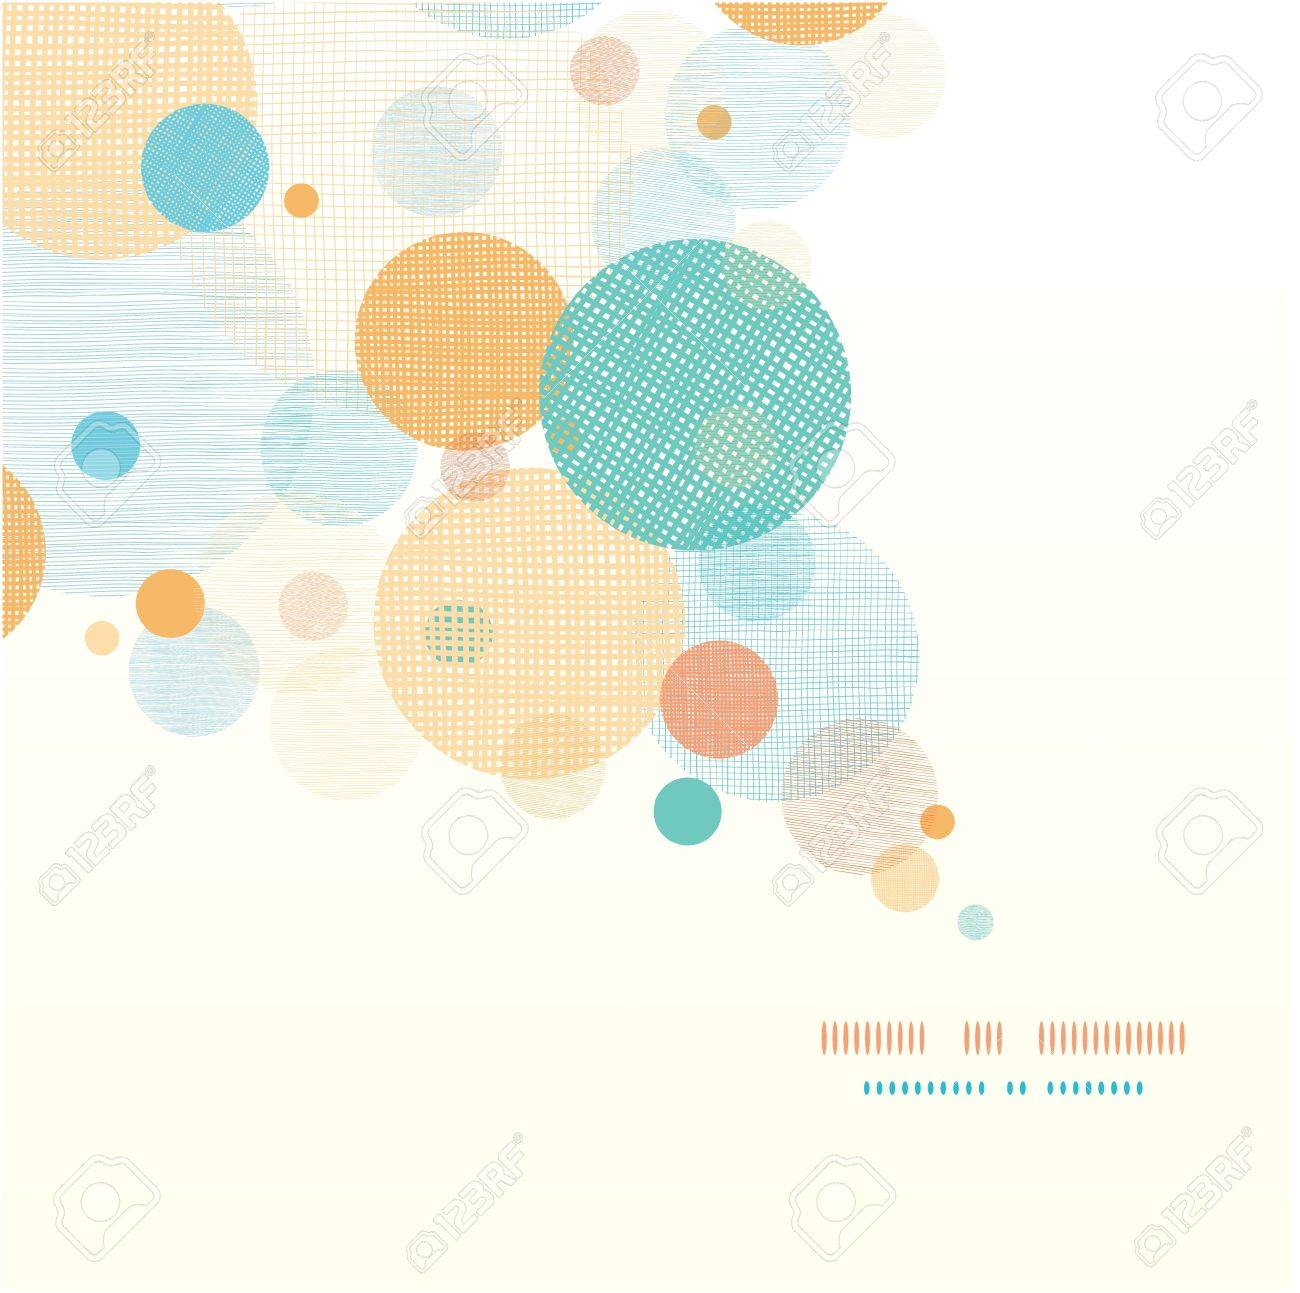 Fabric circles abstract diagonal pattern background Stock Vector - 17428755